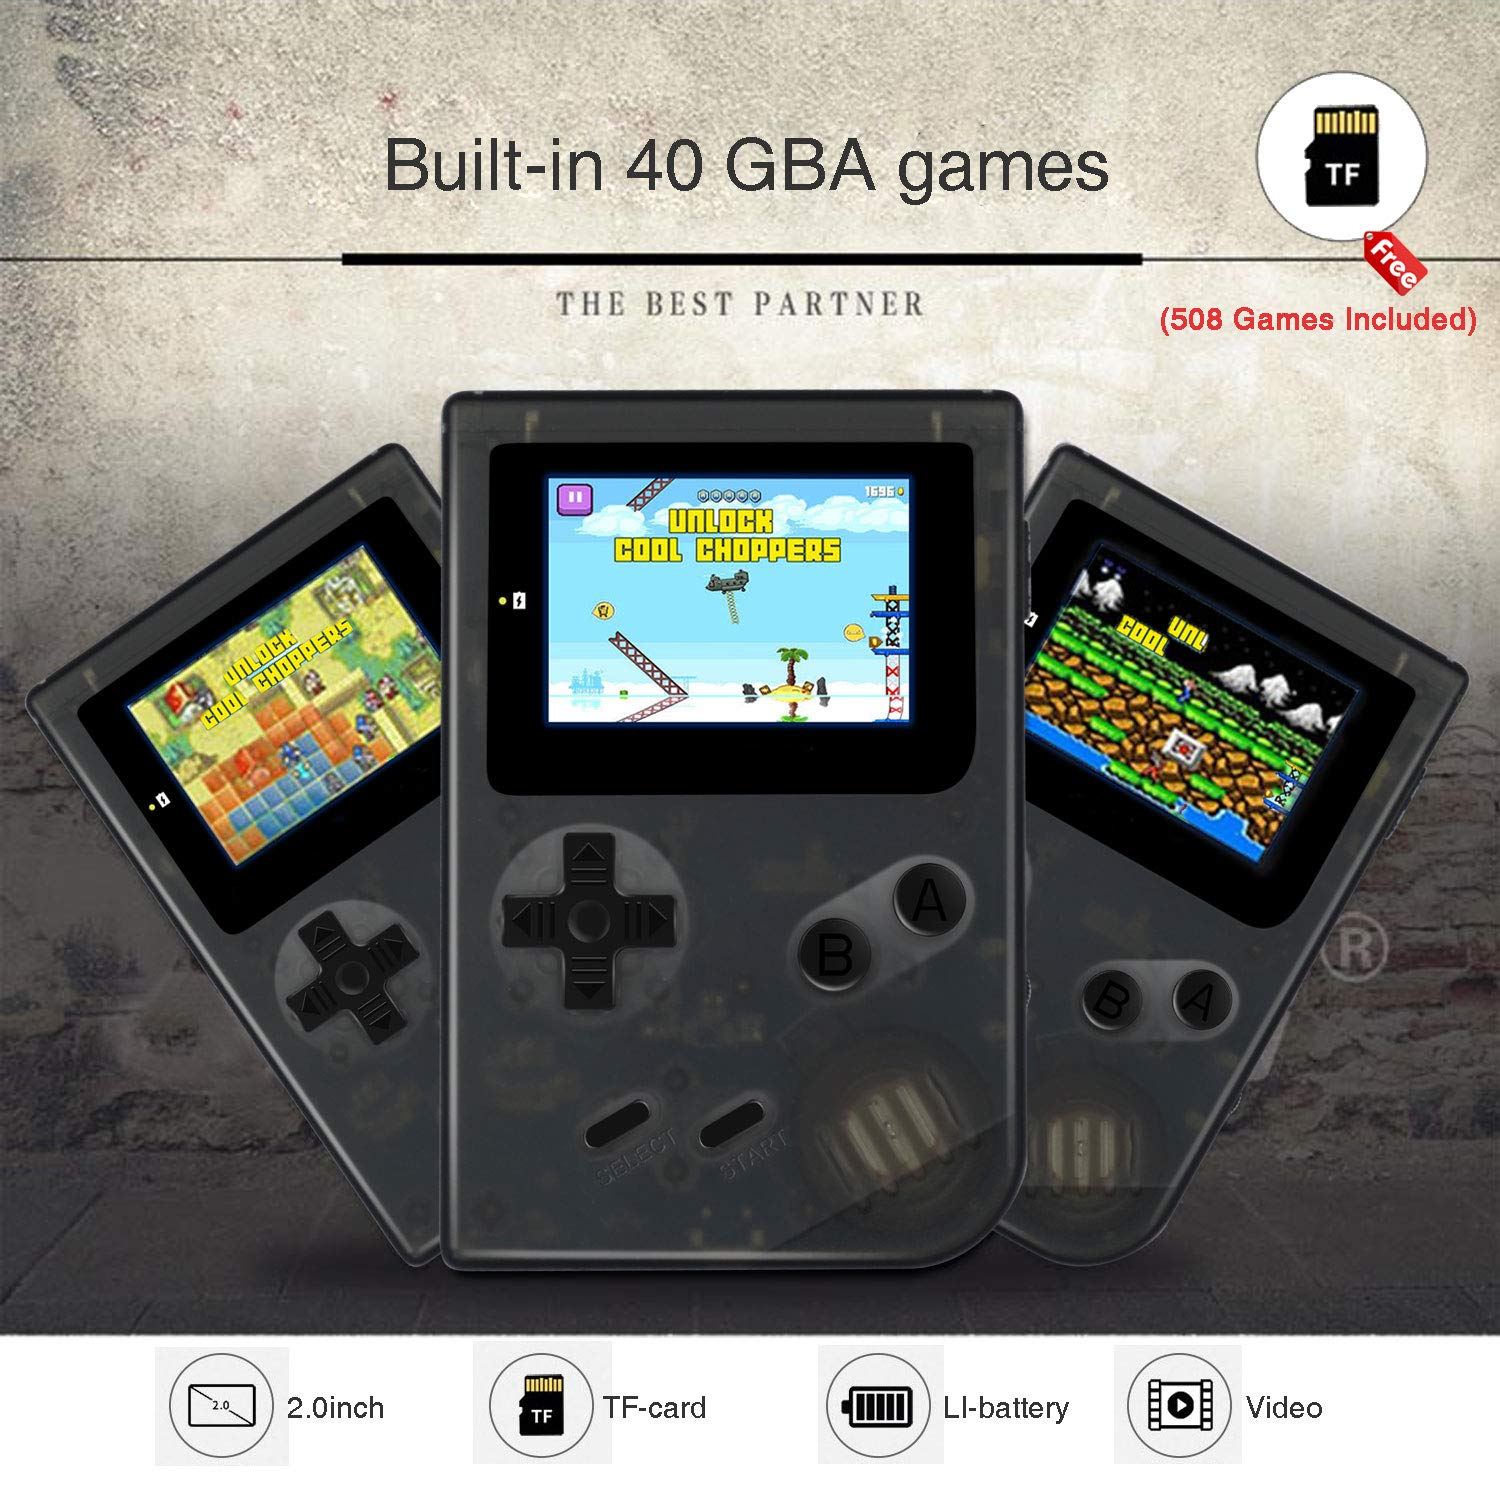 MJKJ Handheld Game Console , Retro Game Console 2 Inch HD Screen 548 Classic GBA Games , Birthday Presents for Children - Transparent Black by MJKJ (Image #3)